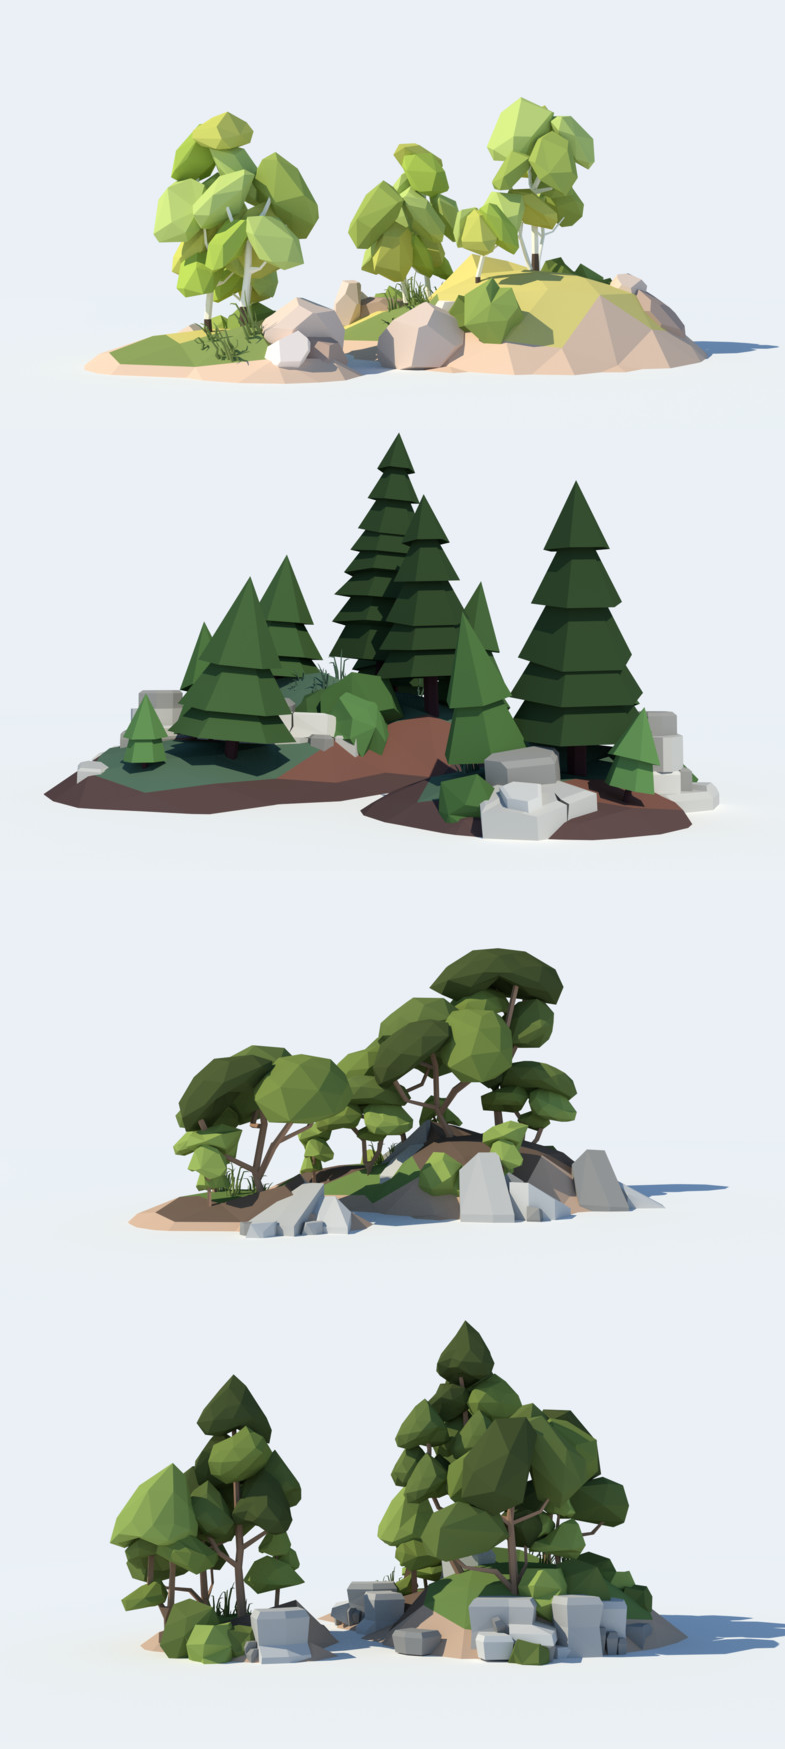 Low Poly Tree Pack  Unity 3D Game Asset  Contains 38 stylized low